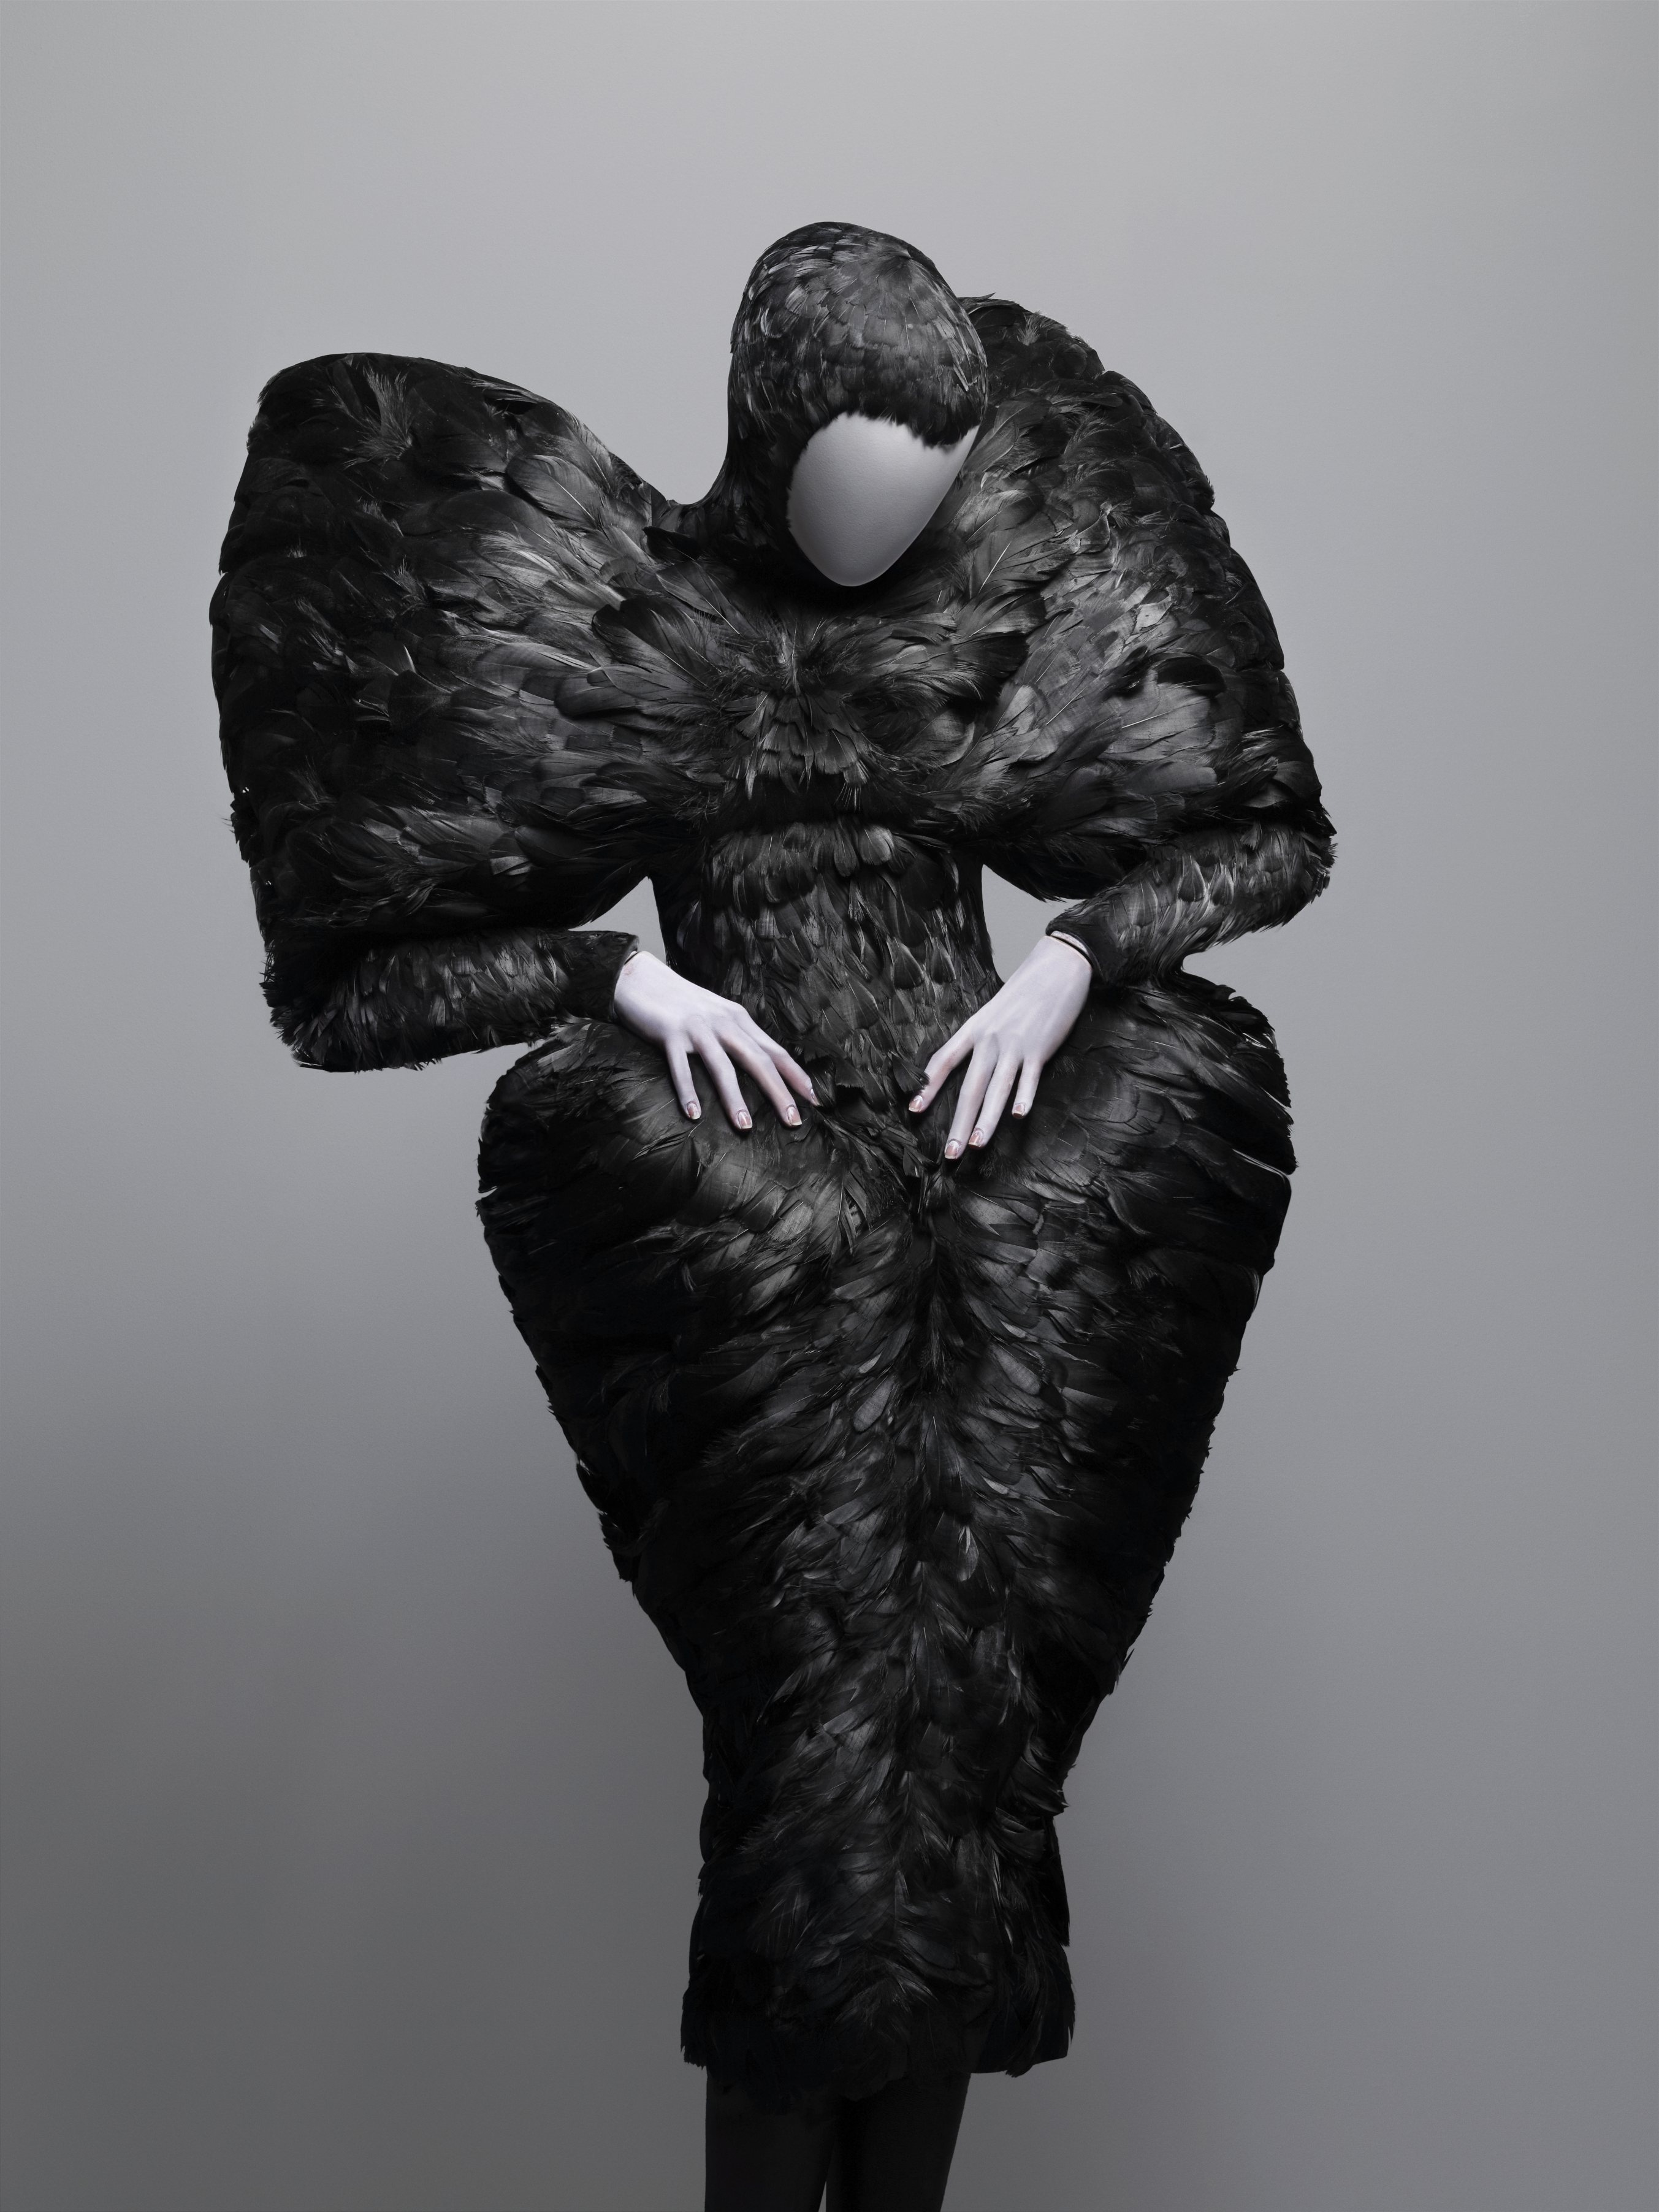 Alexander McQueen - Black Duck Feathers - 2009-10